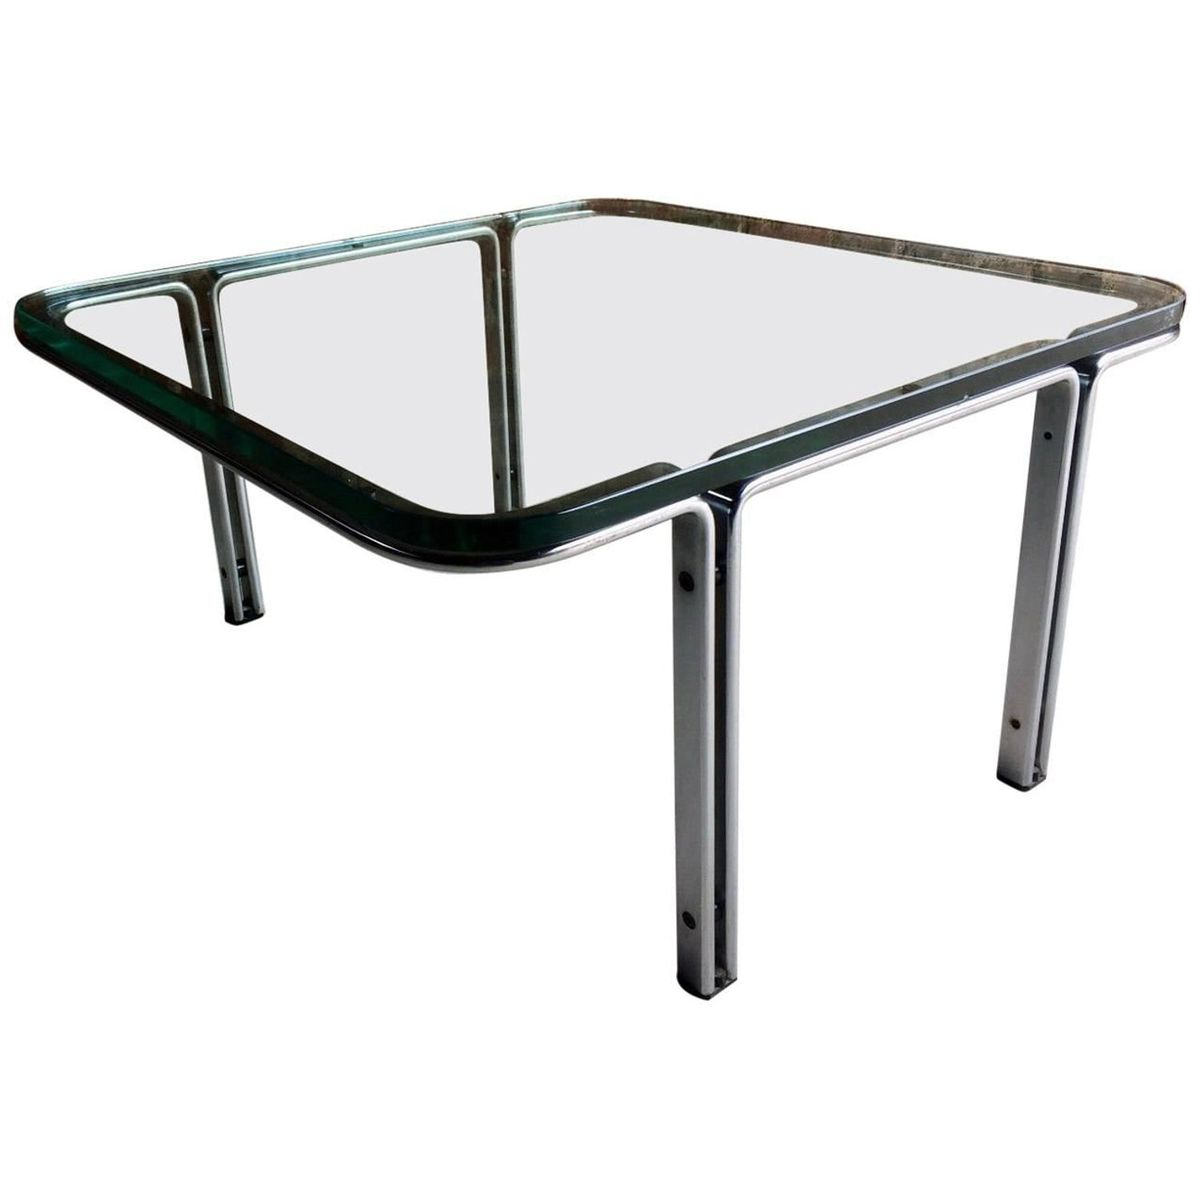 Model T111 Square Steel U0026 Glass Coffee Table By Horst Brüning For Kill  International, 1960s